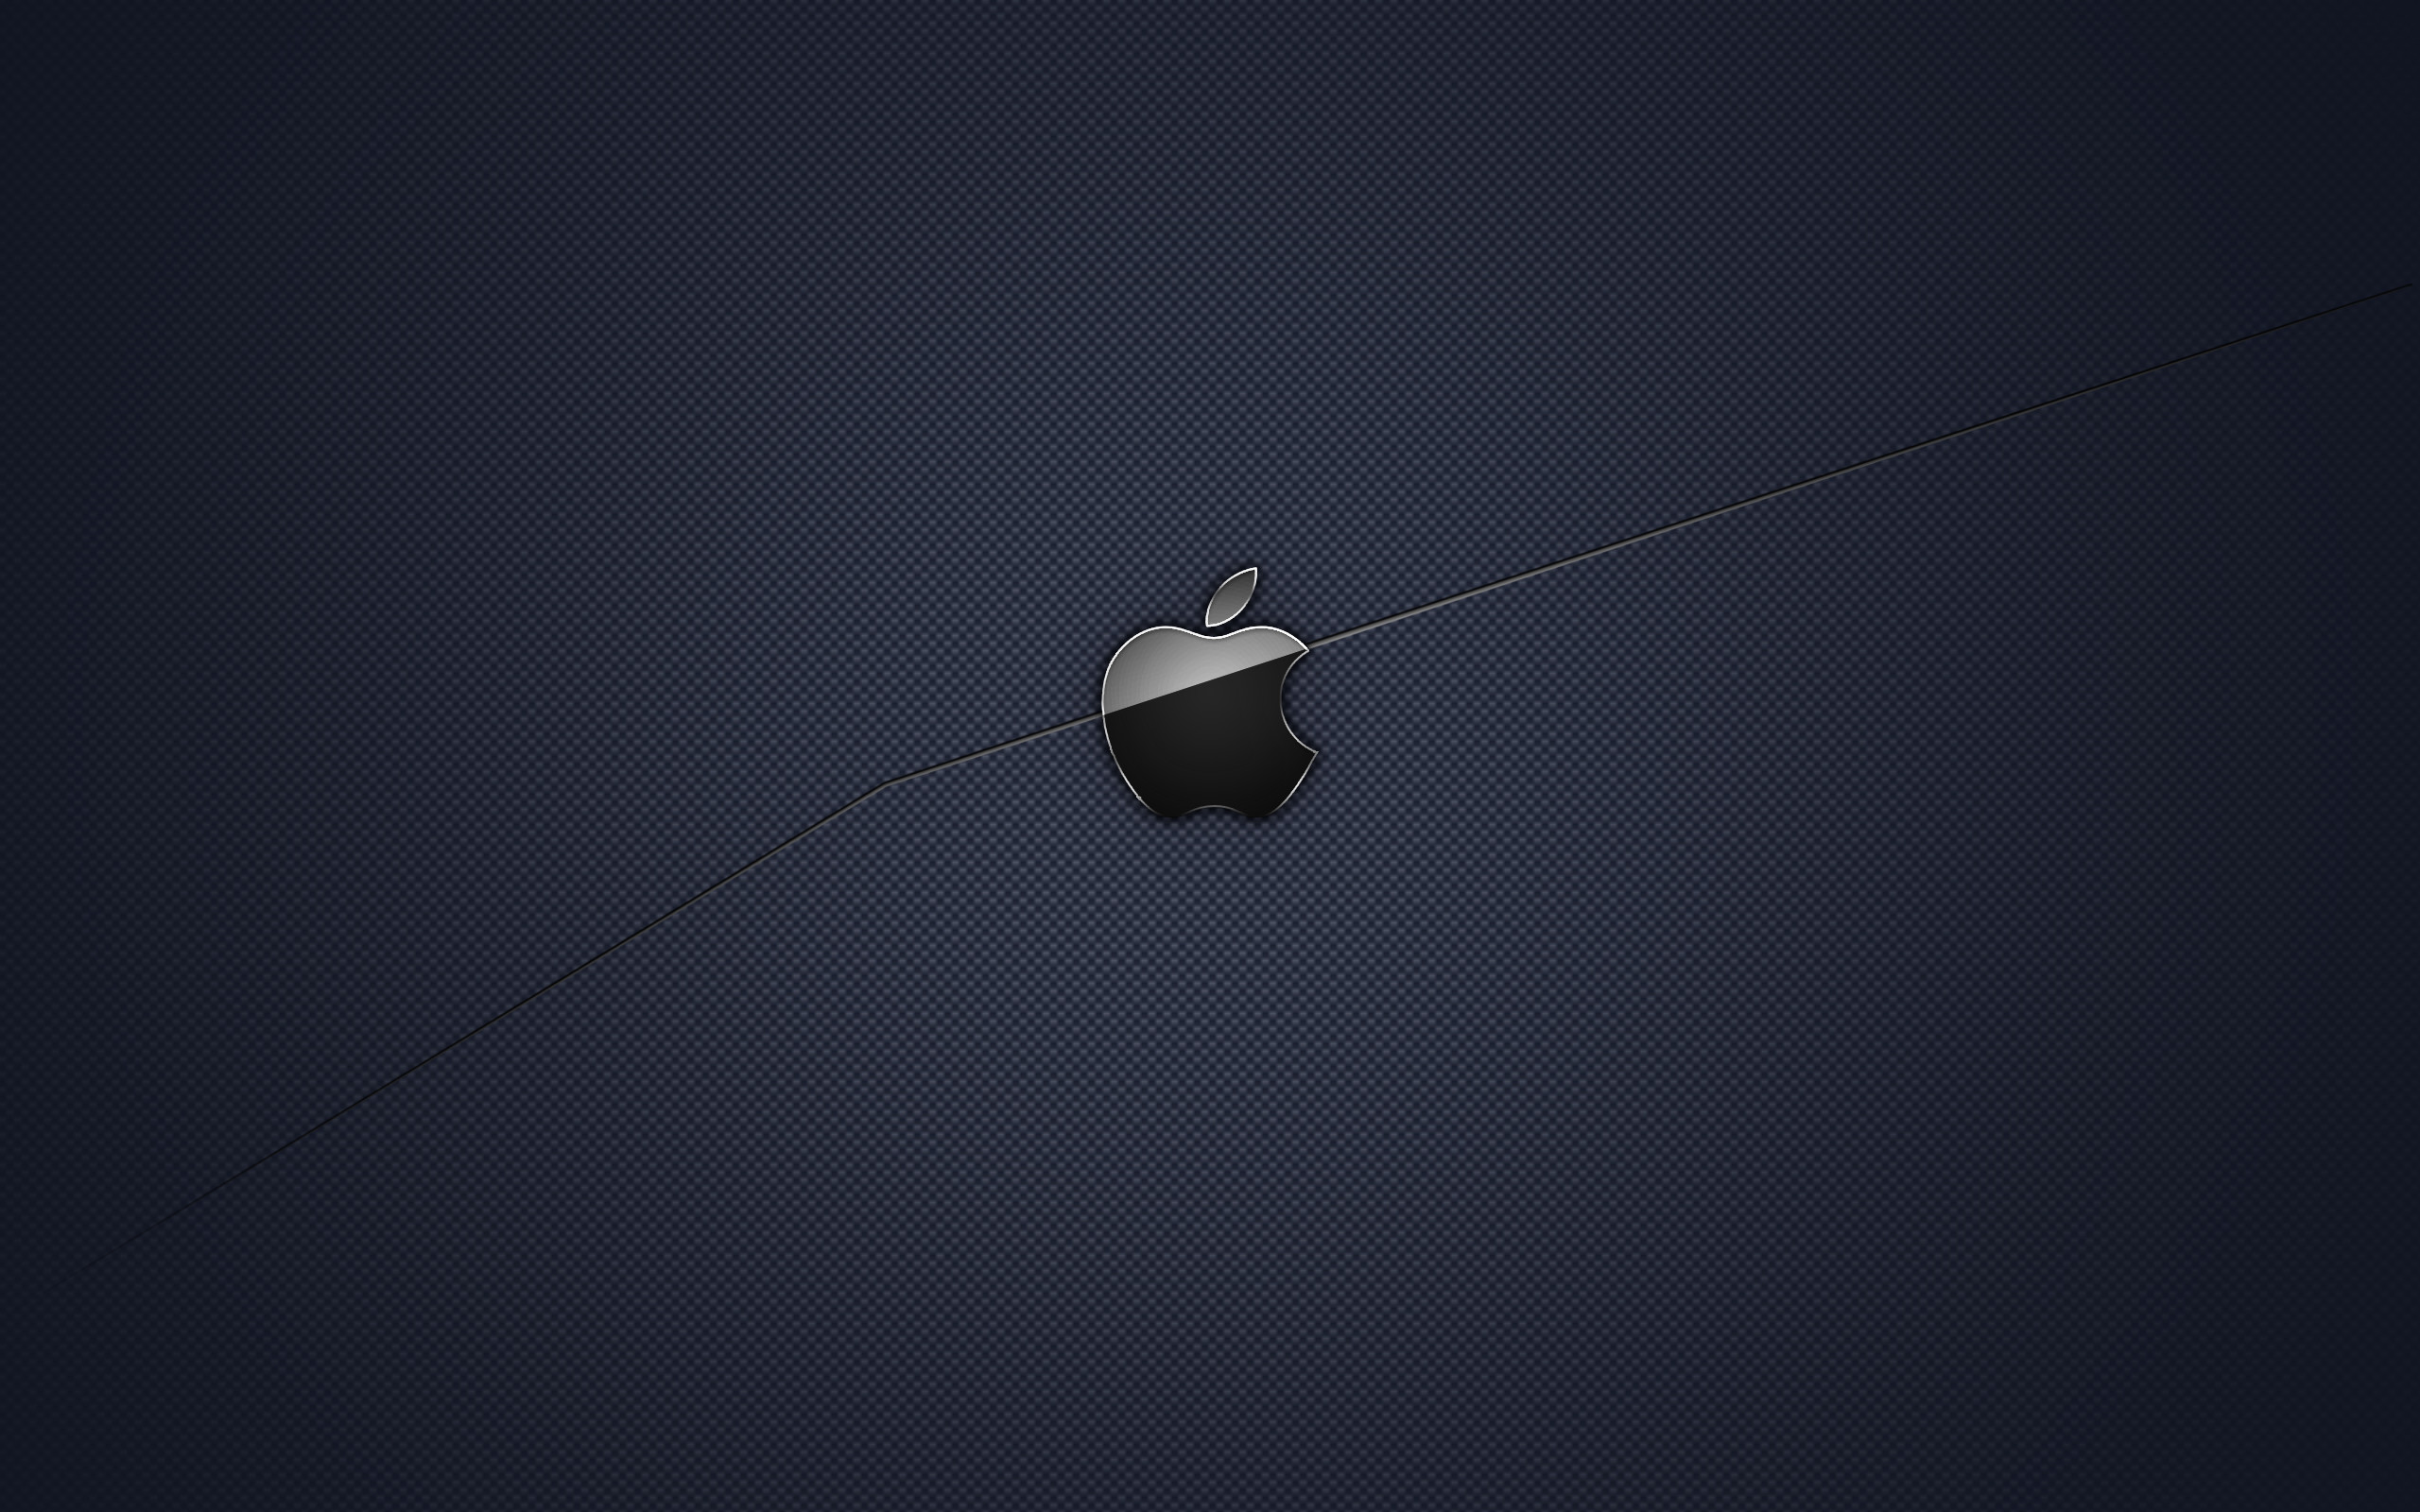 2560x1600 HD Apple Mac OS X Galaxy Wallpaper High Resolution Full Size